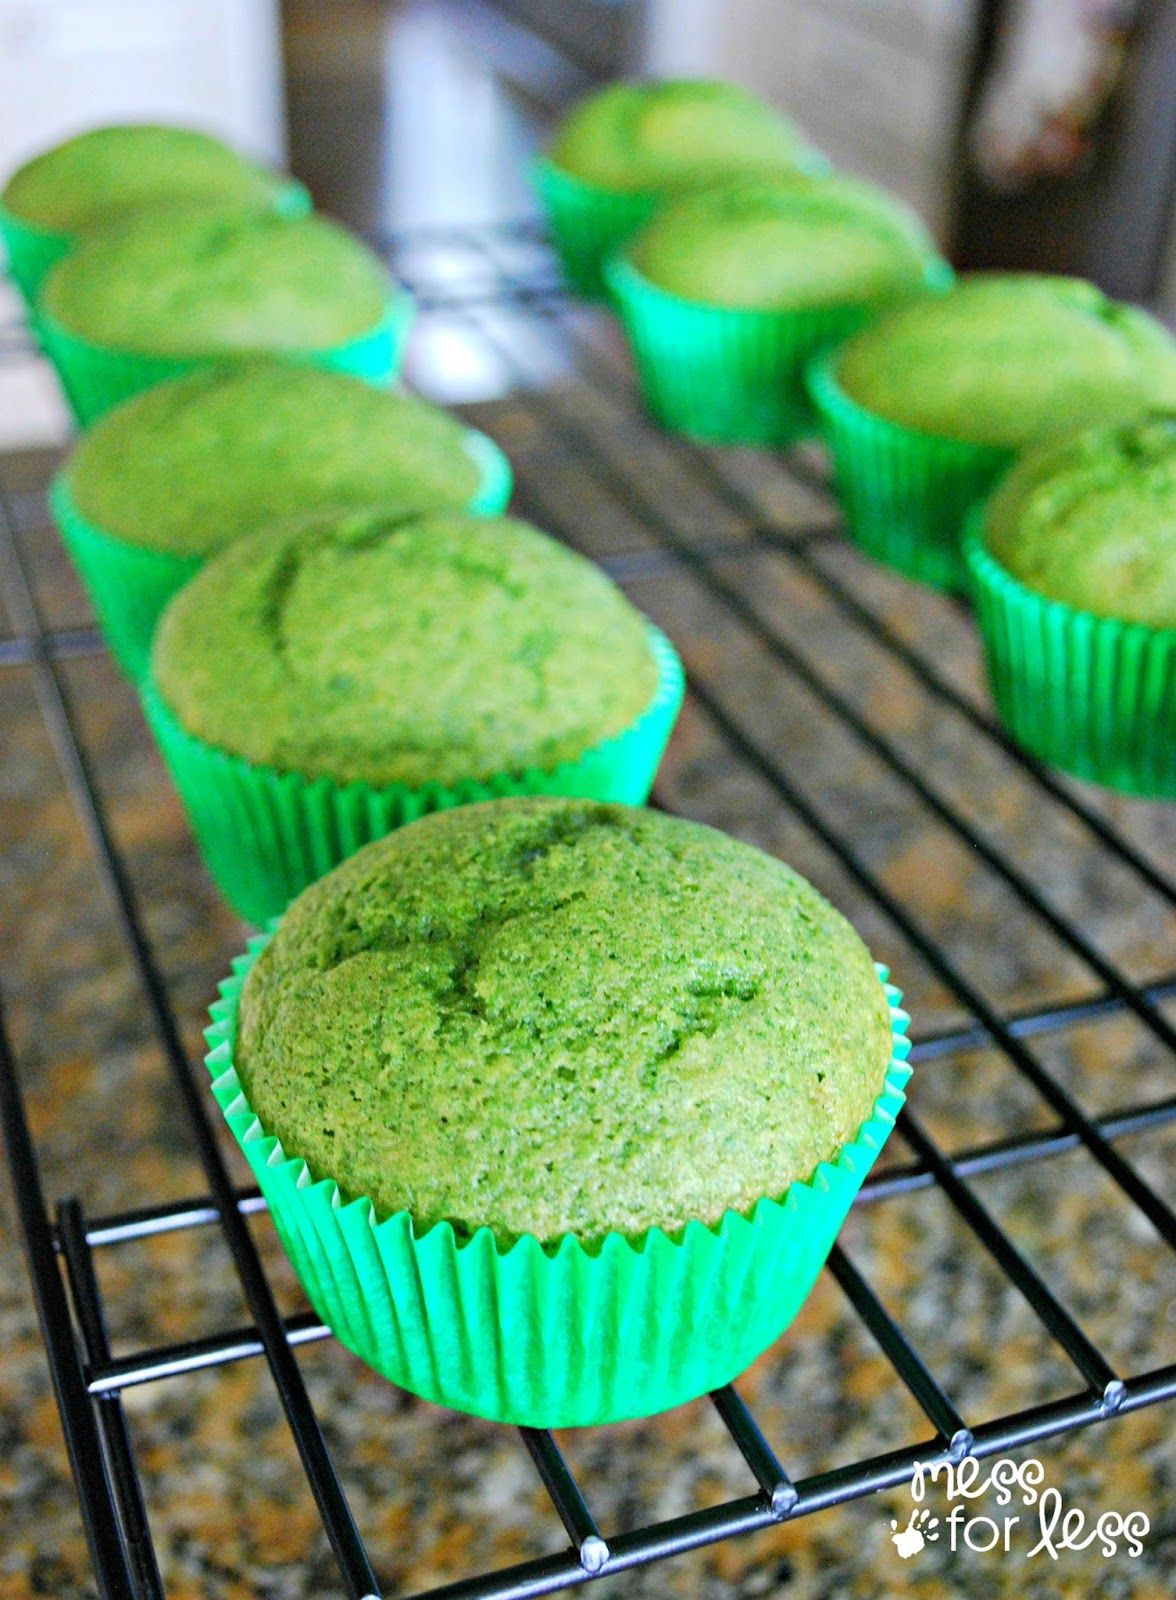 8 Healthy Muffin Recipes for Breakfast - MOMables